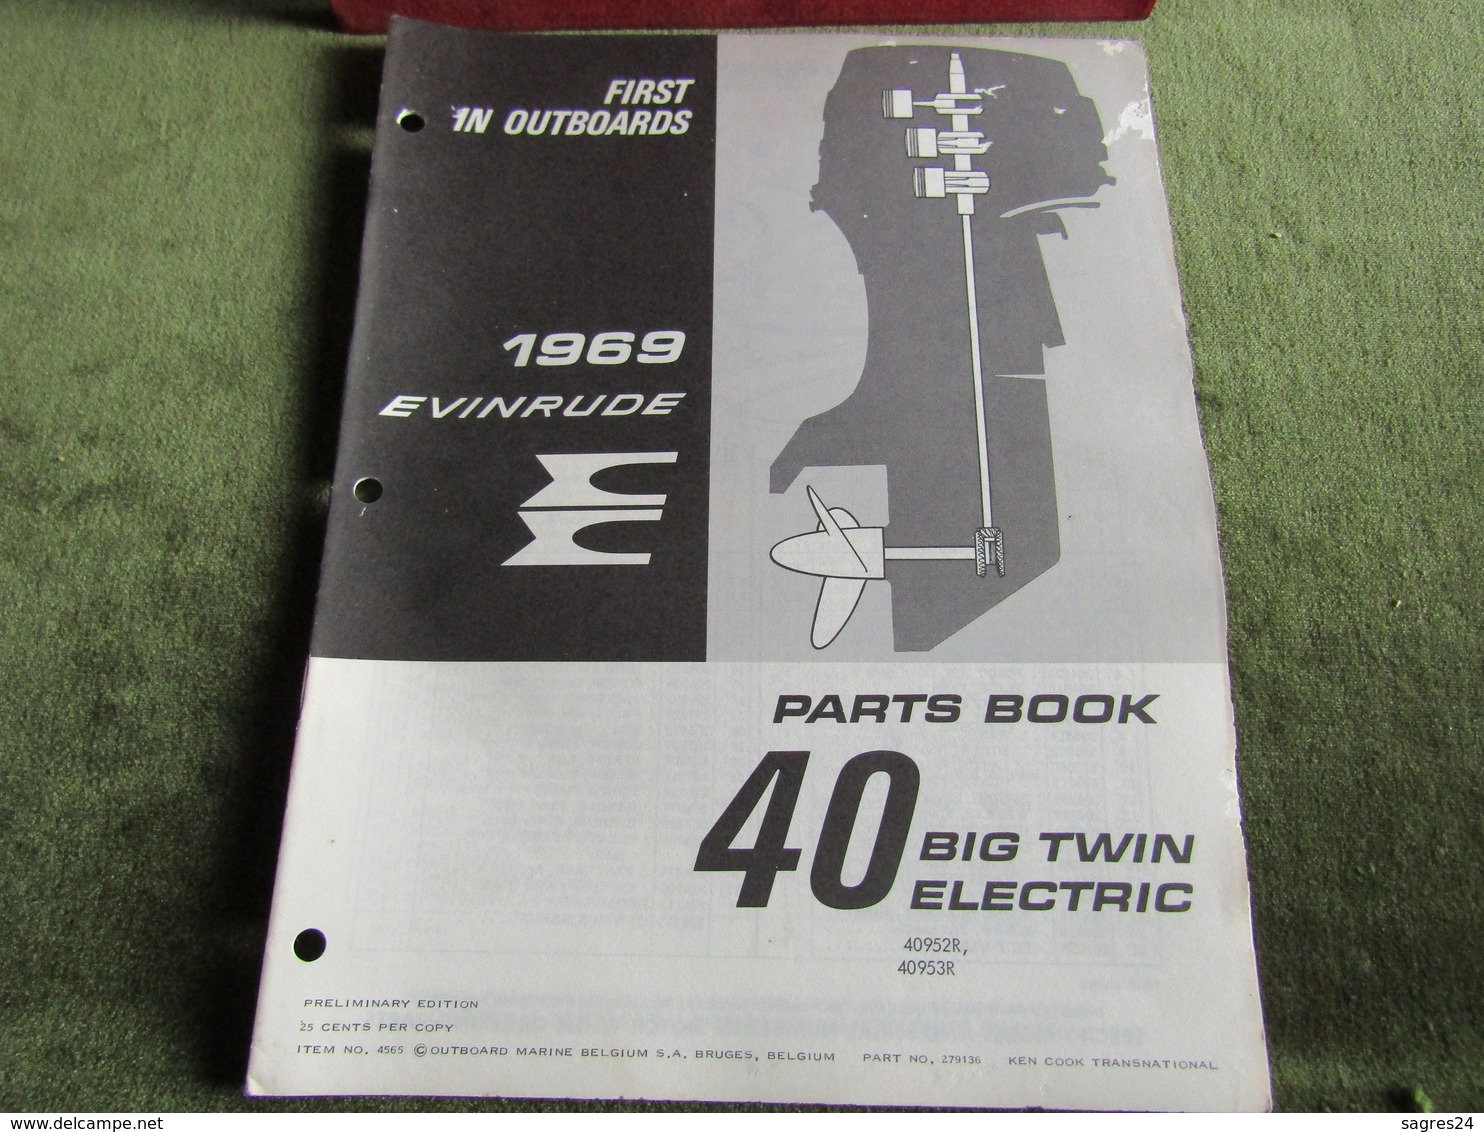 Evinrude Outboard 40 Big Twin Electric Parts Book 1969 - Boats